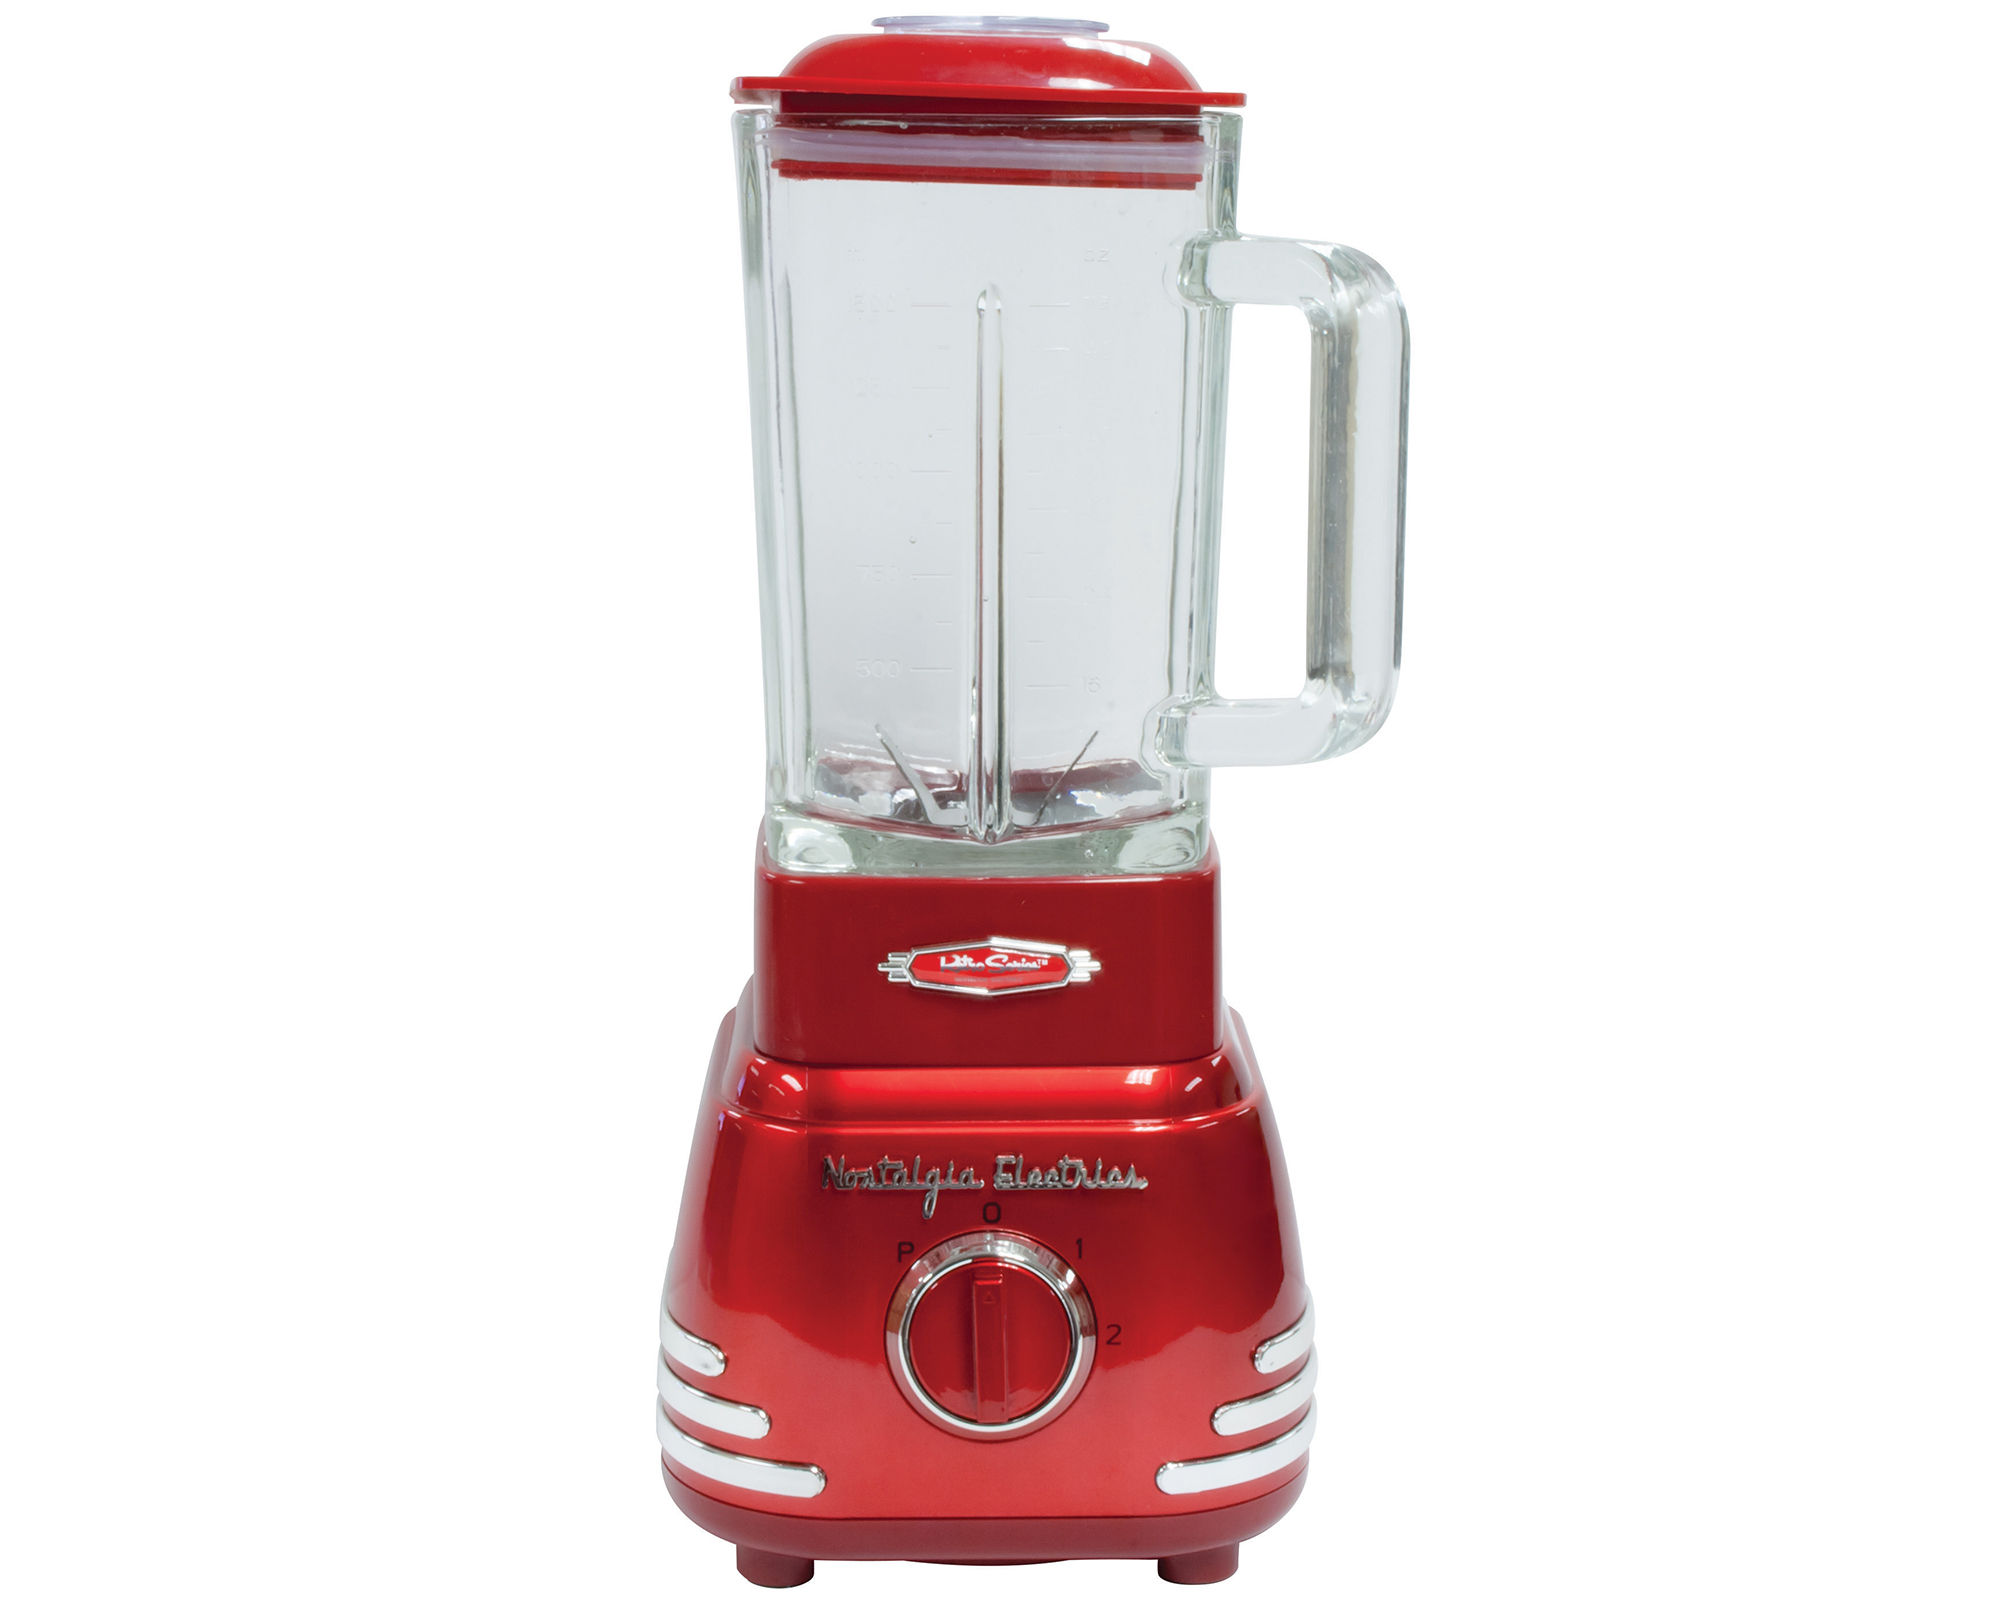 Nostalgia Retro Blender